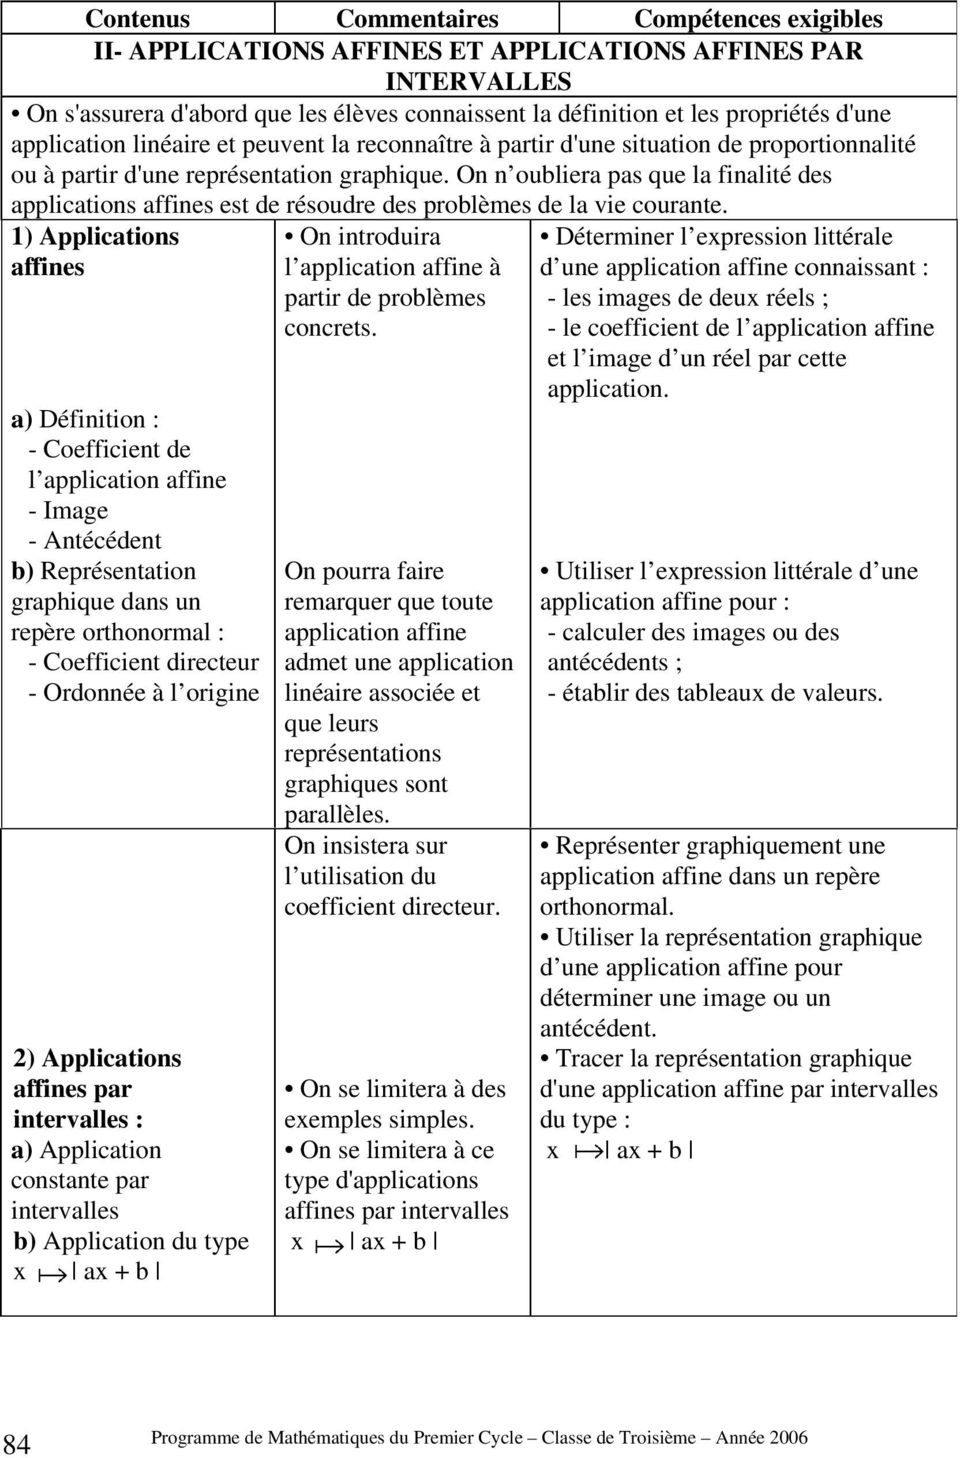 1) Applications affines a) Définition : - Coefficient de l application affine - Image - Antécédent b) Représentation graphique dans un repère orthonormal : - Coefficient directeur - Ordonnée à l